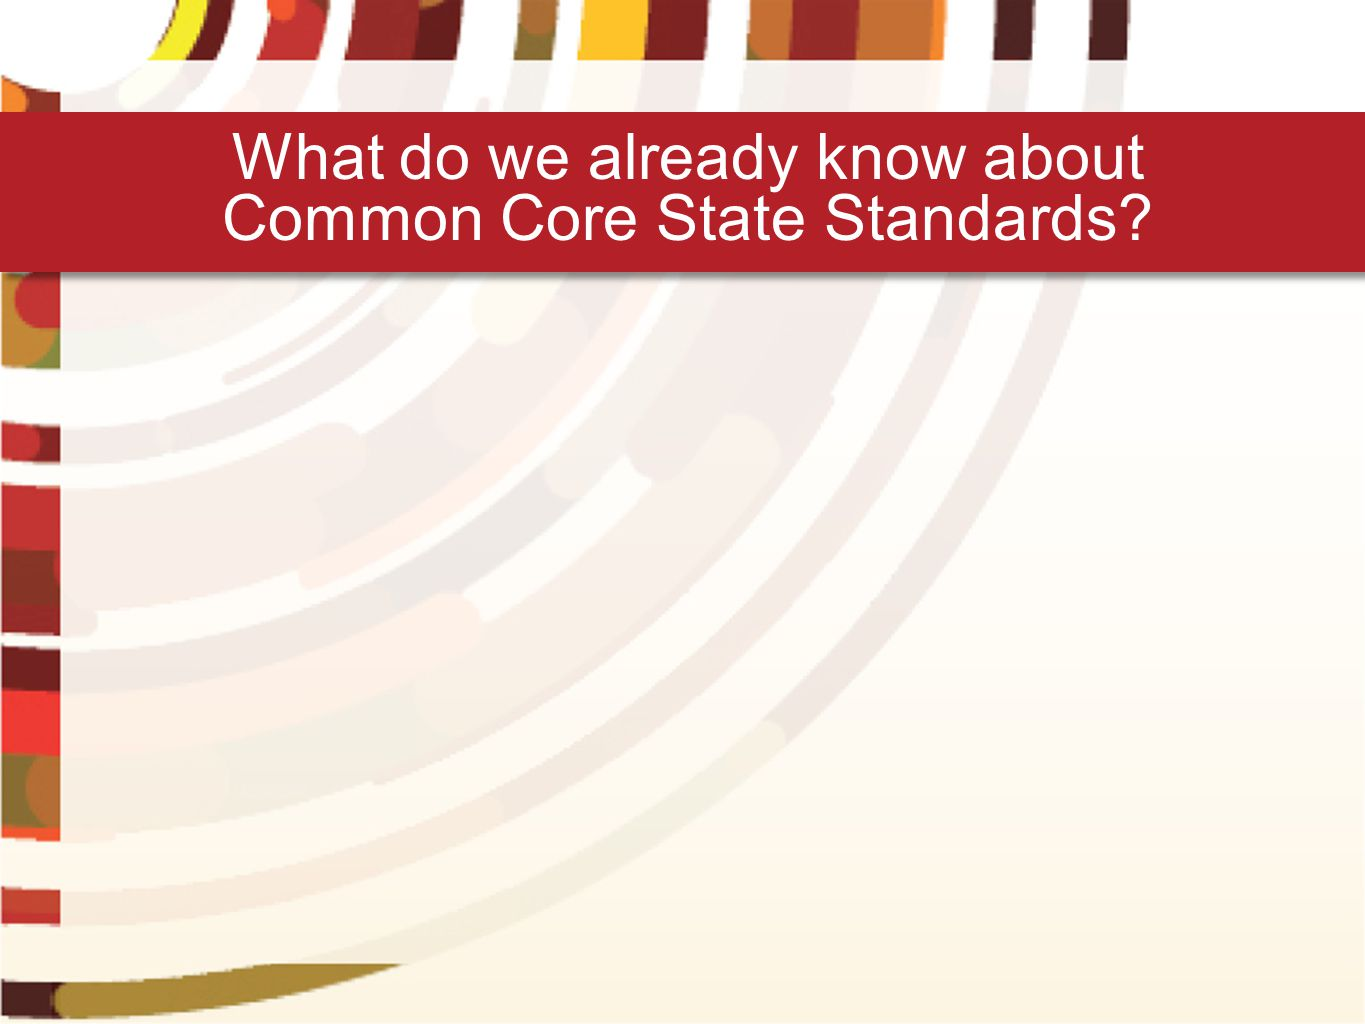 What do we already know about Common Core State Standards?